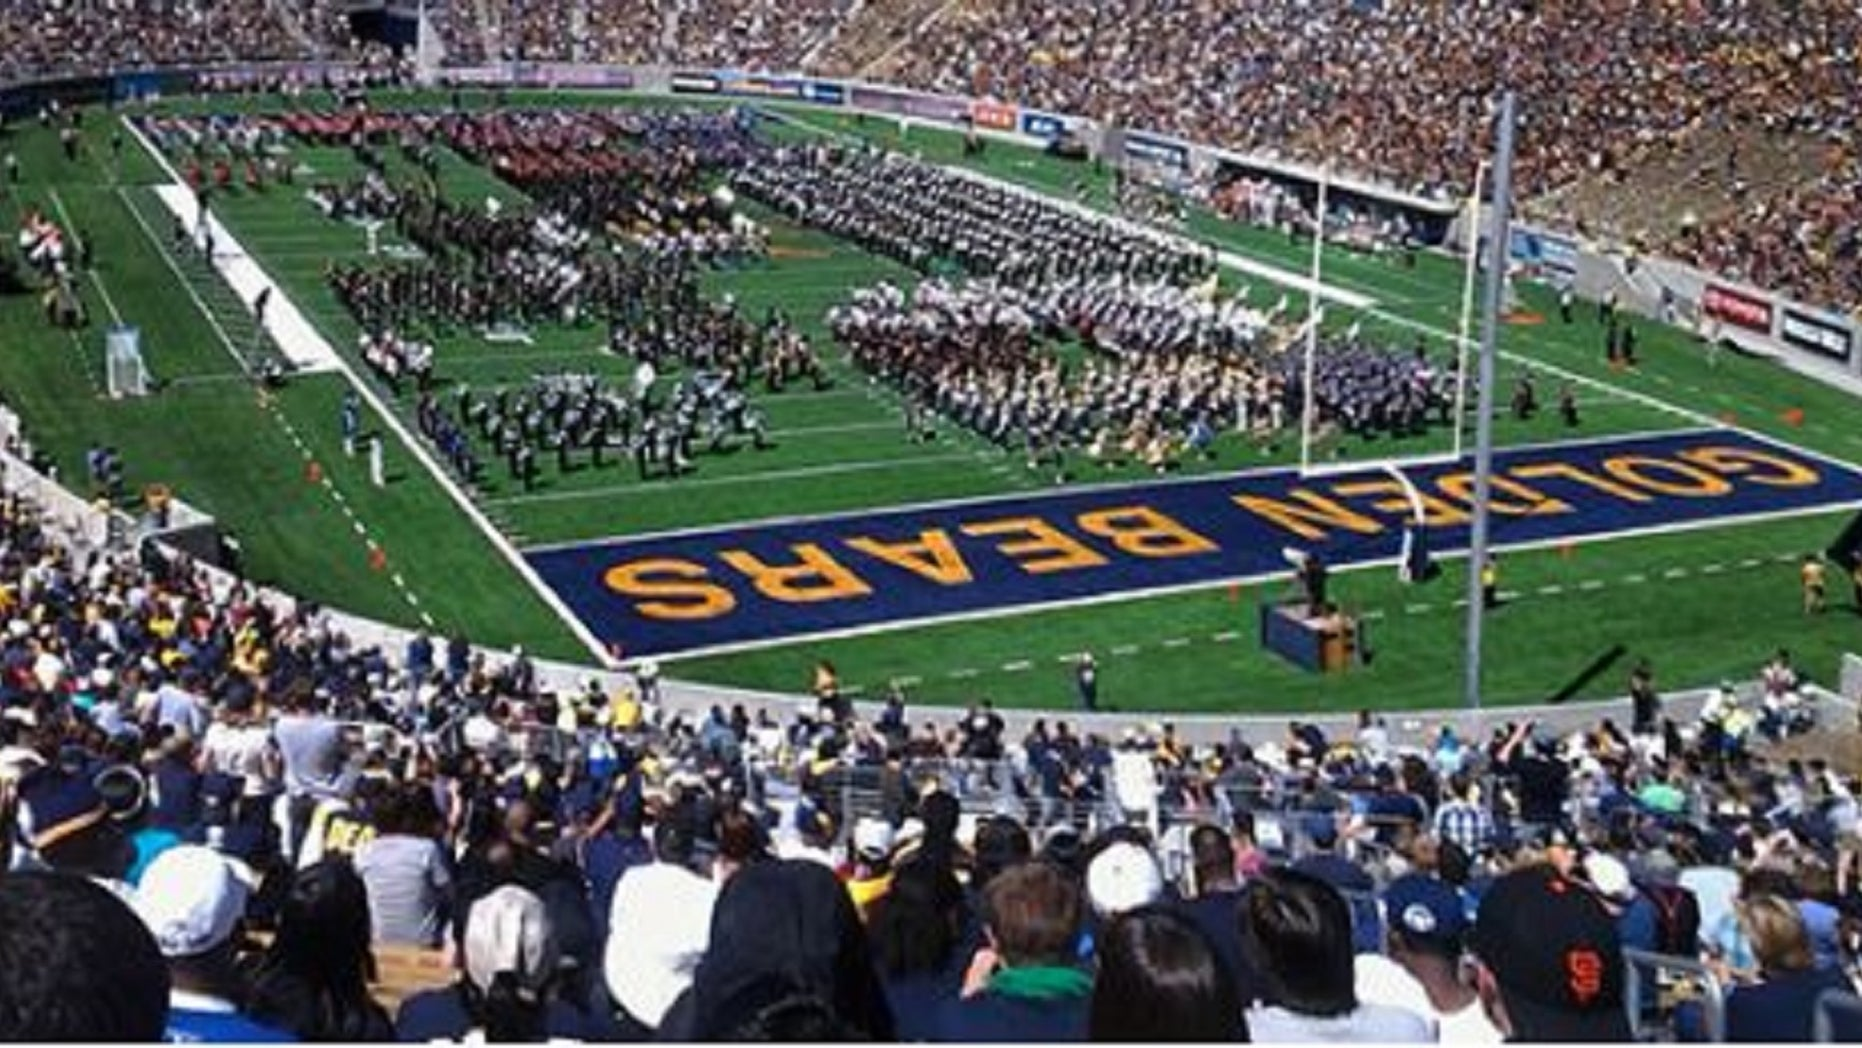 A woman has accused football players and coaches at theUniversity of California at Berkeley of sexual harassment in a social media post.